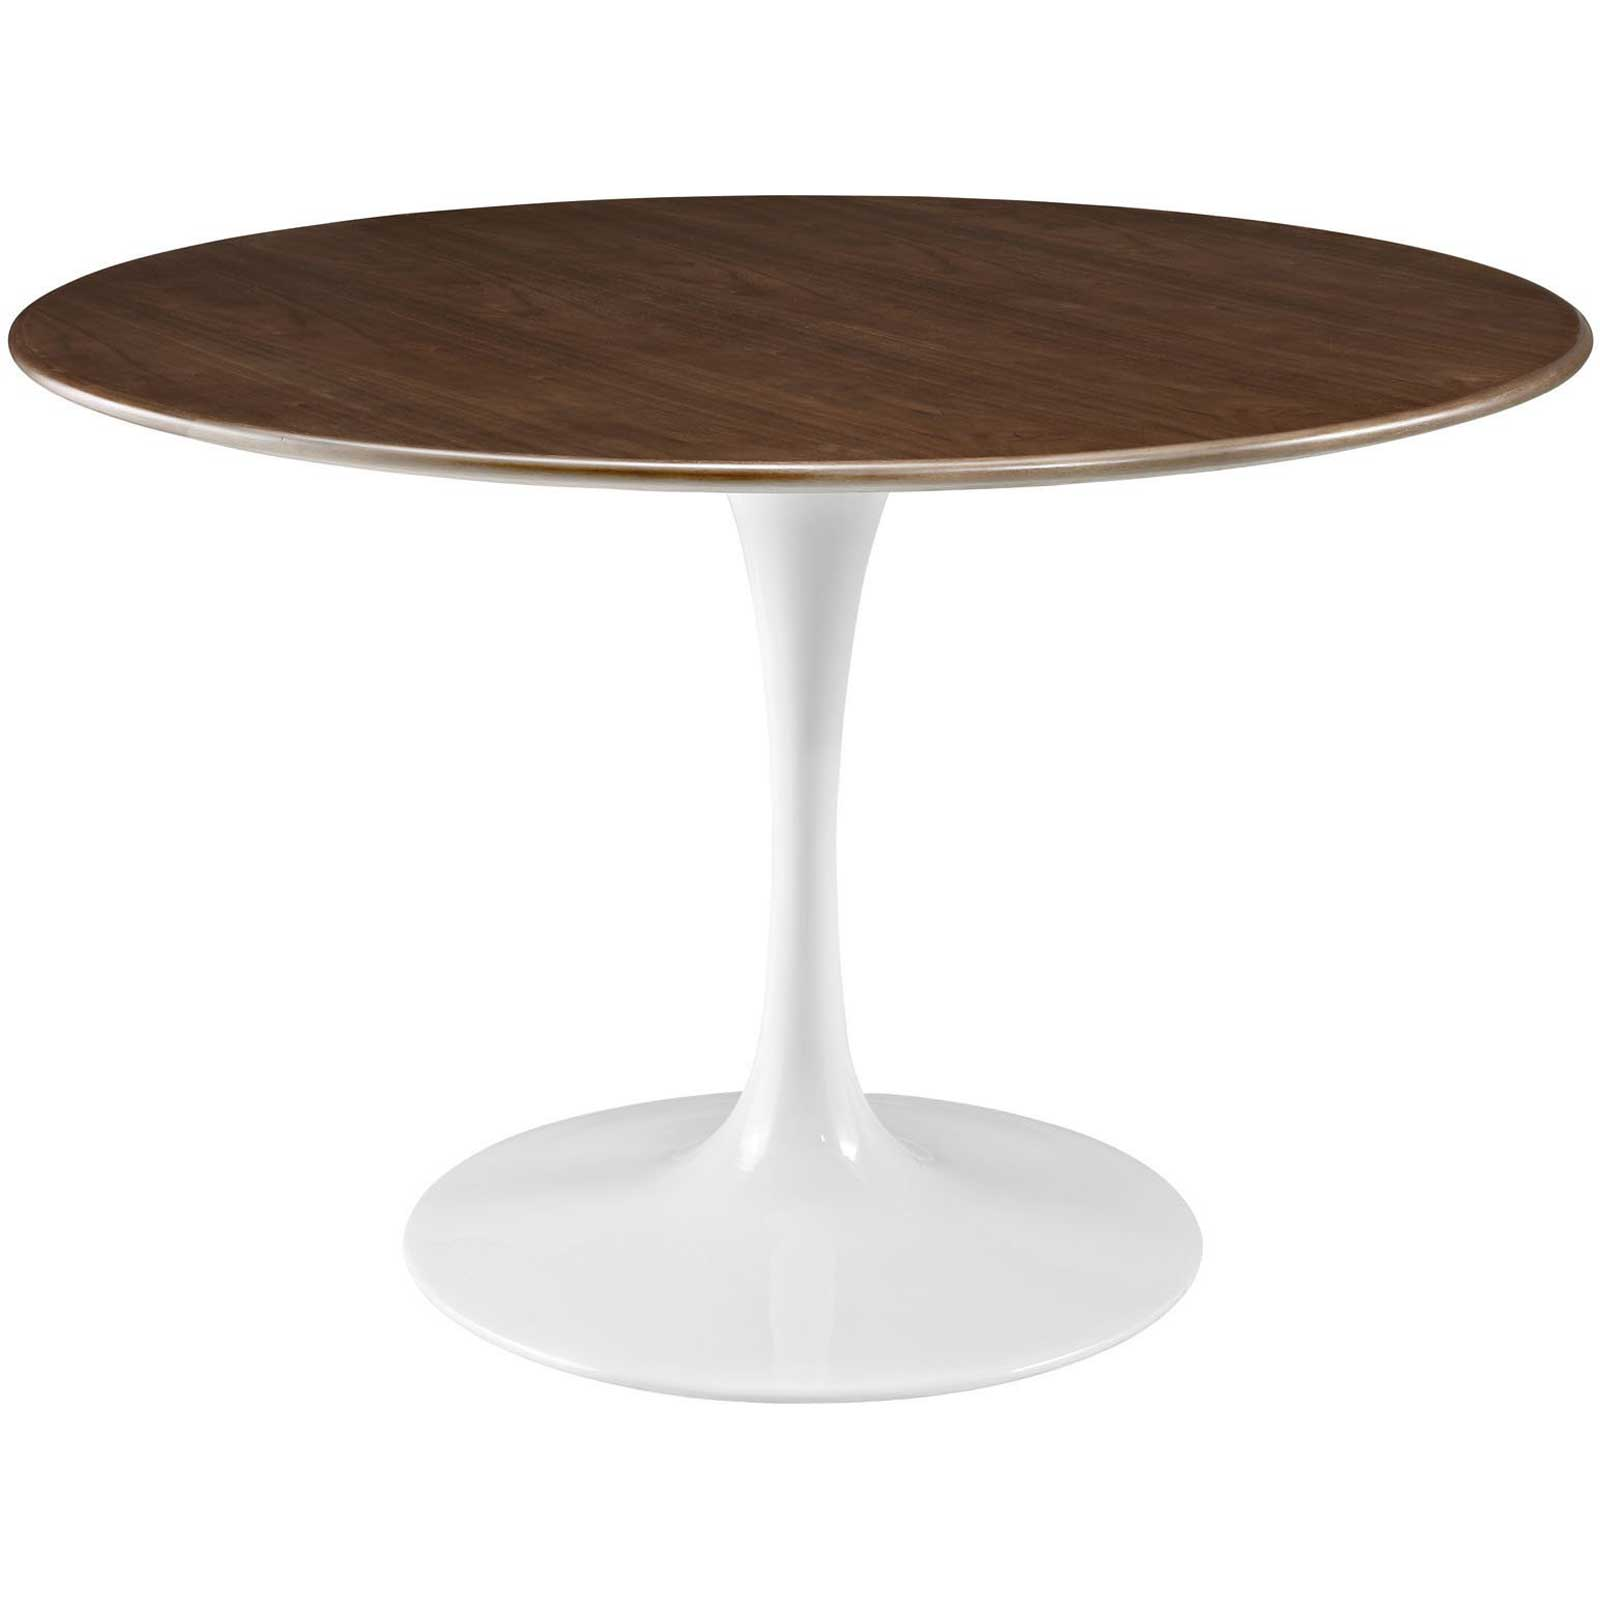 Lore Round Dining Table